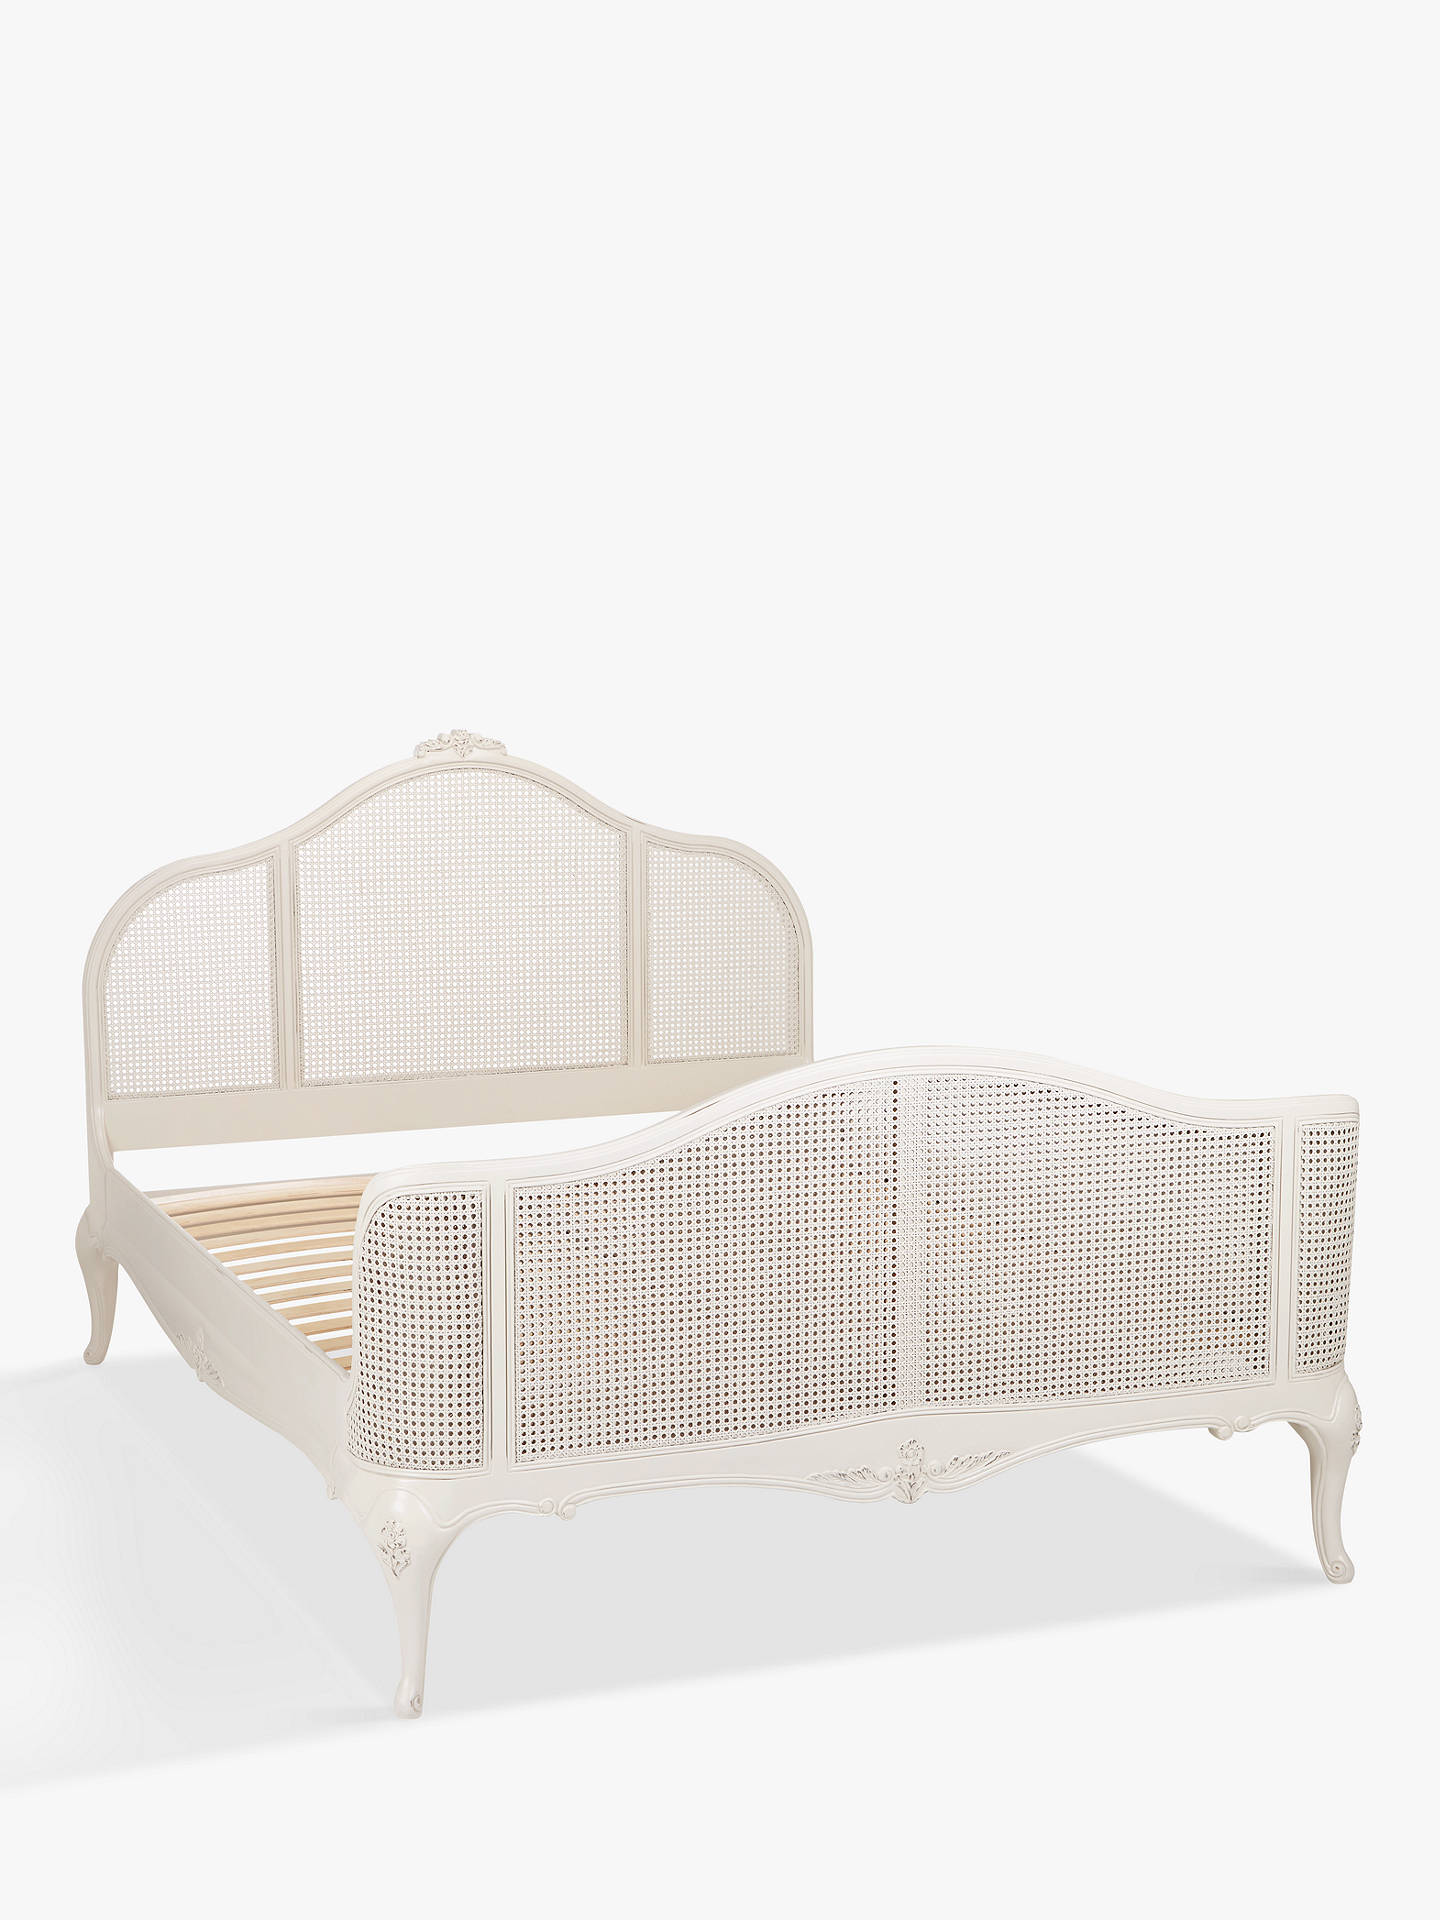 John Lewis Rose Mist Rattan Bed Frame King Size At